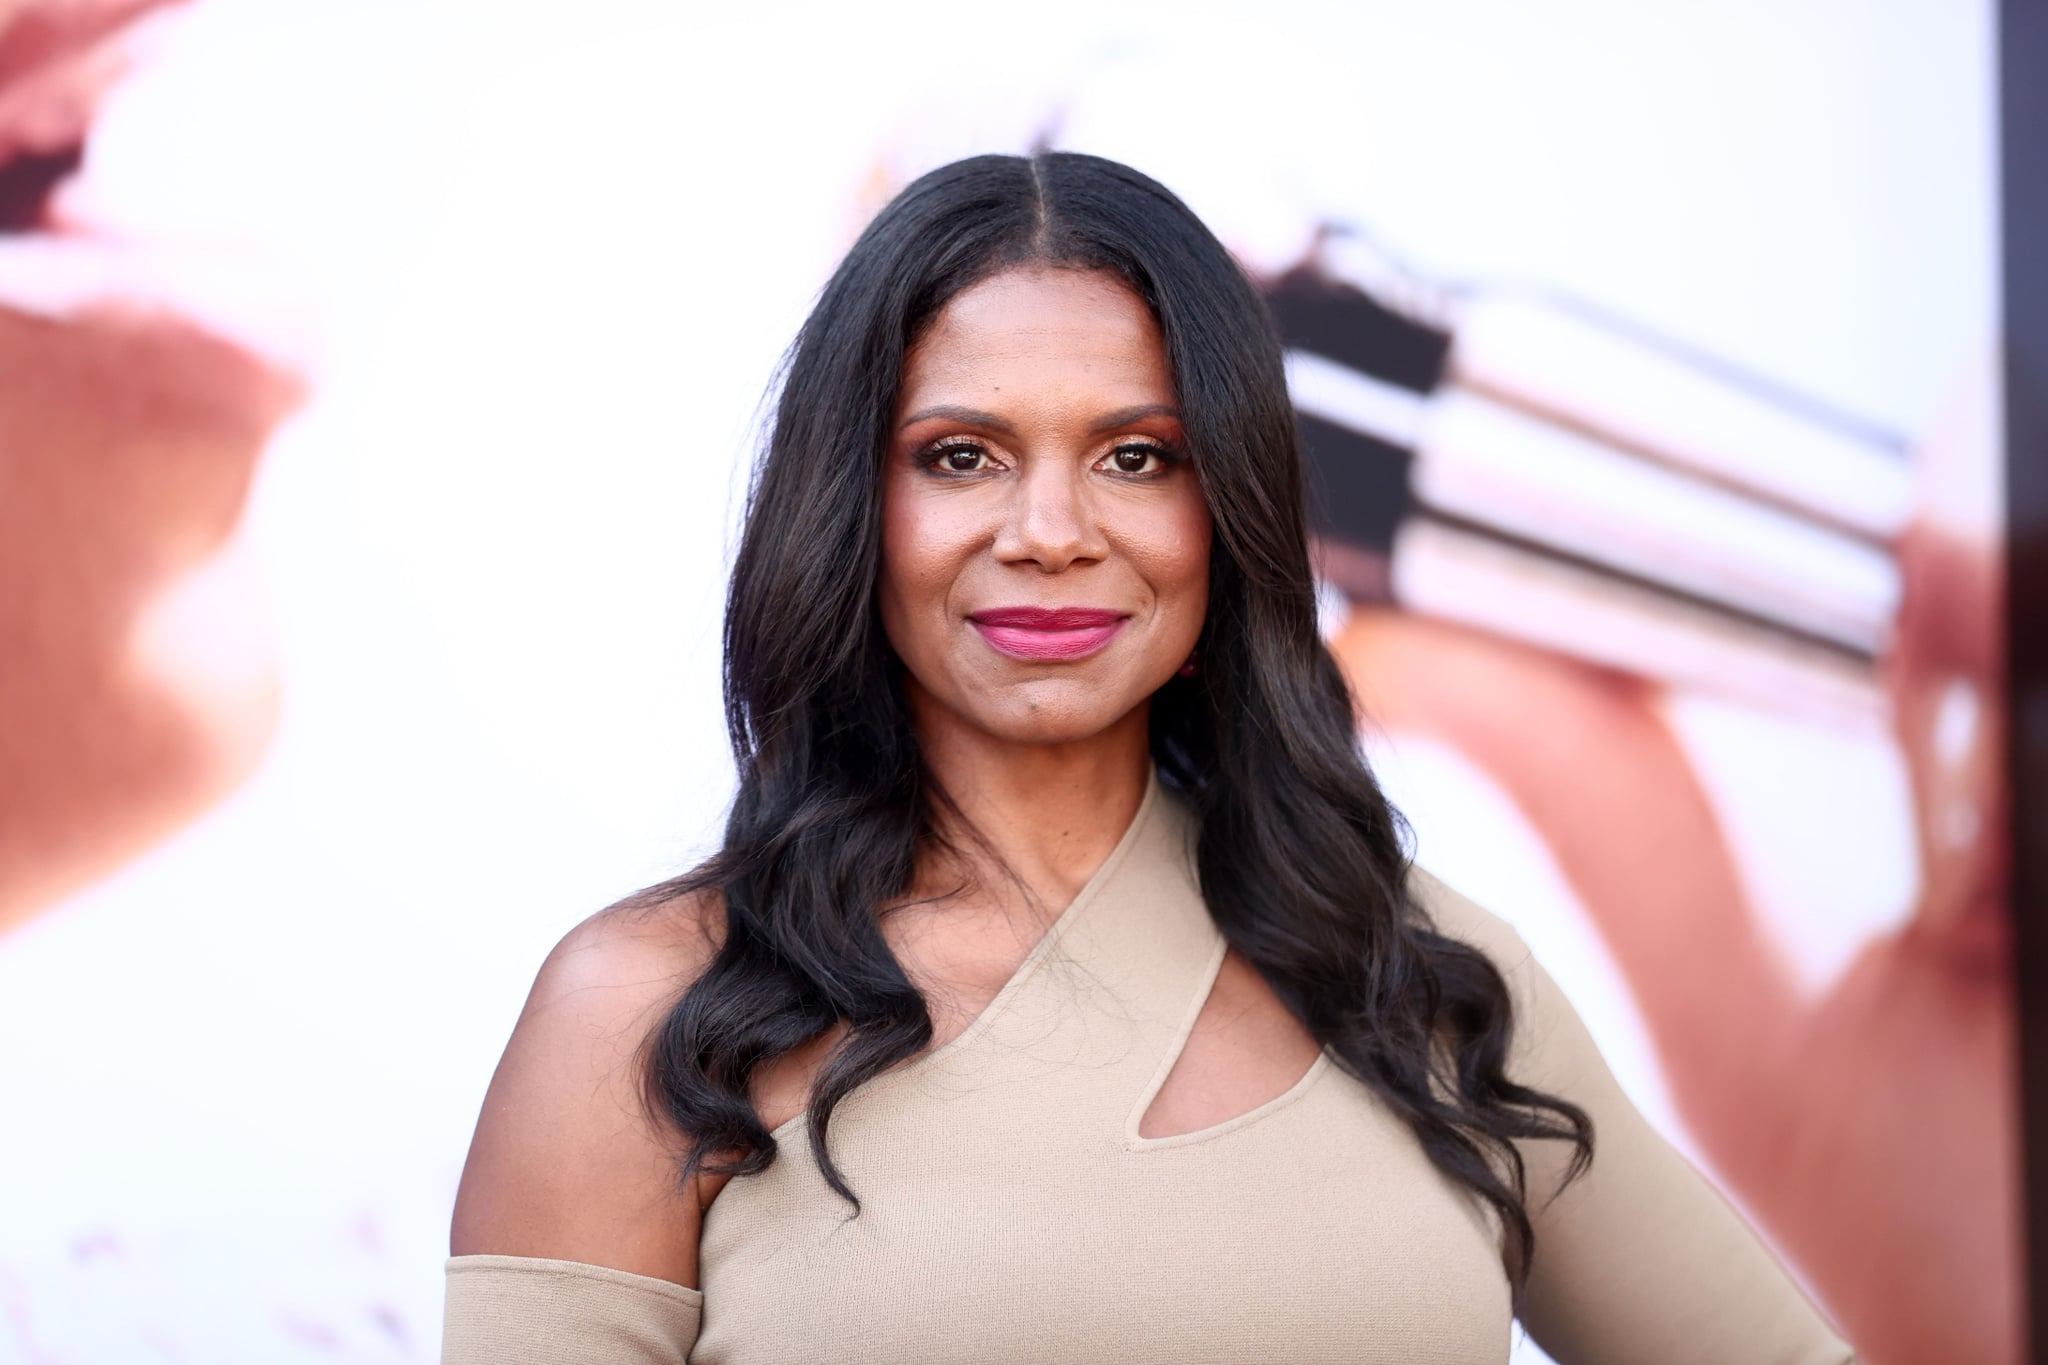 LOS ANGELES, CALIFORNIA - AUGUST 08: Audra McDonald attends the premiere of MGM's